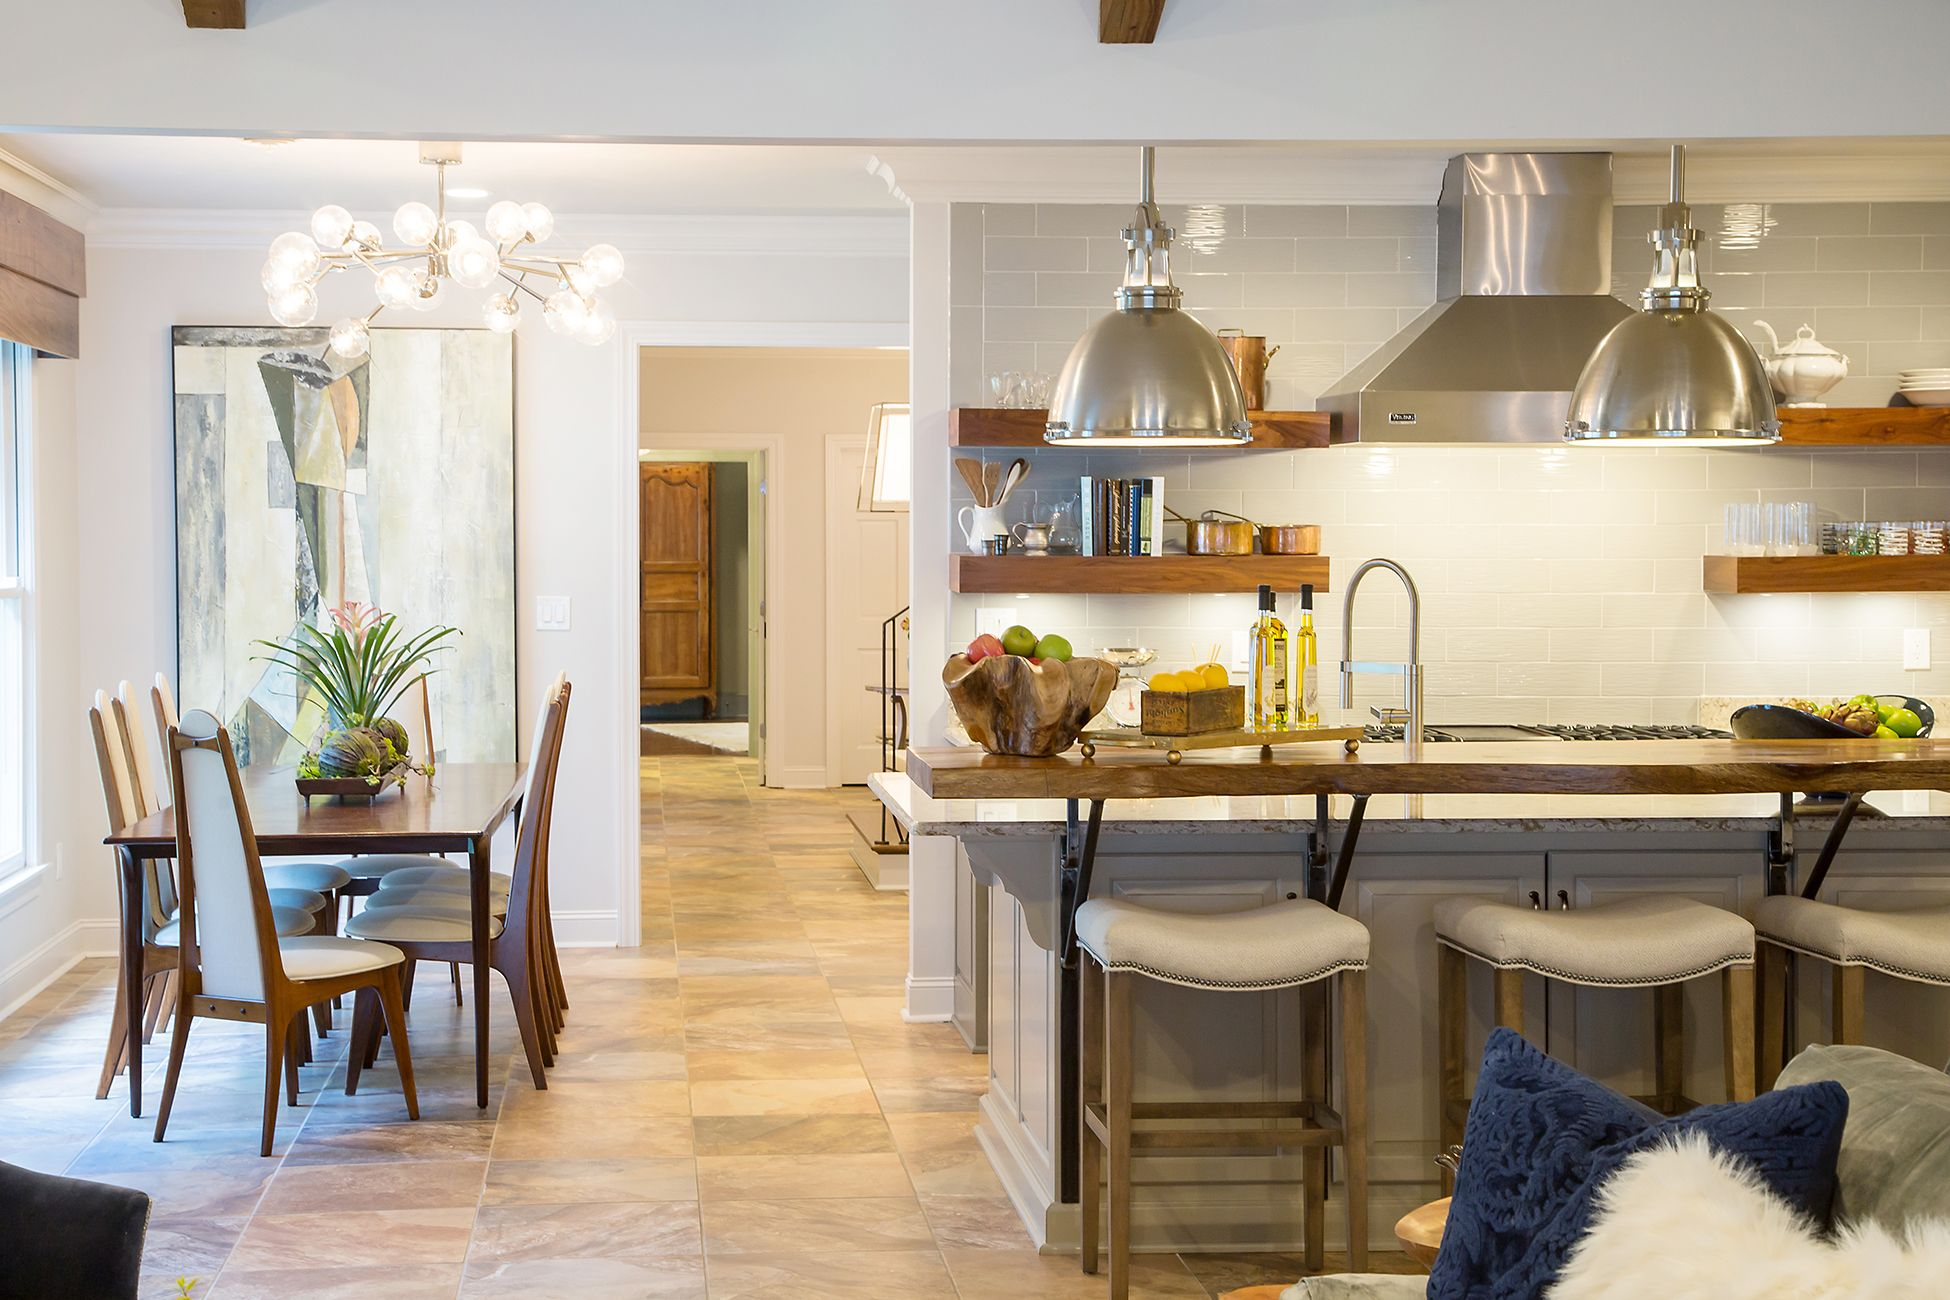 This open concept kitchen and living is a stunning design